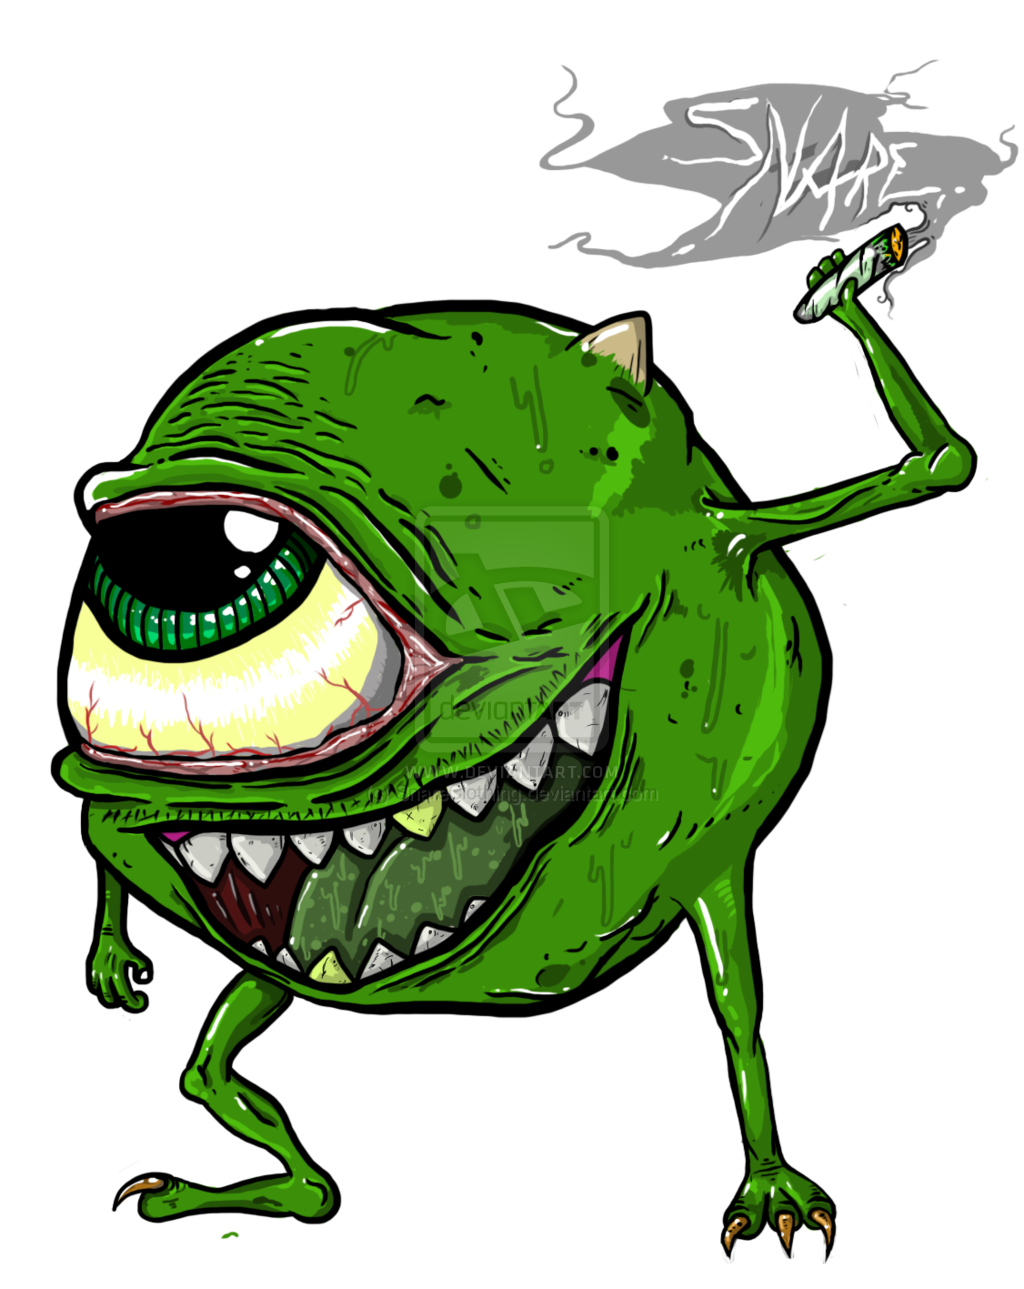 Weeds drawing 10 bit. Art mike wazowski